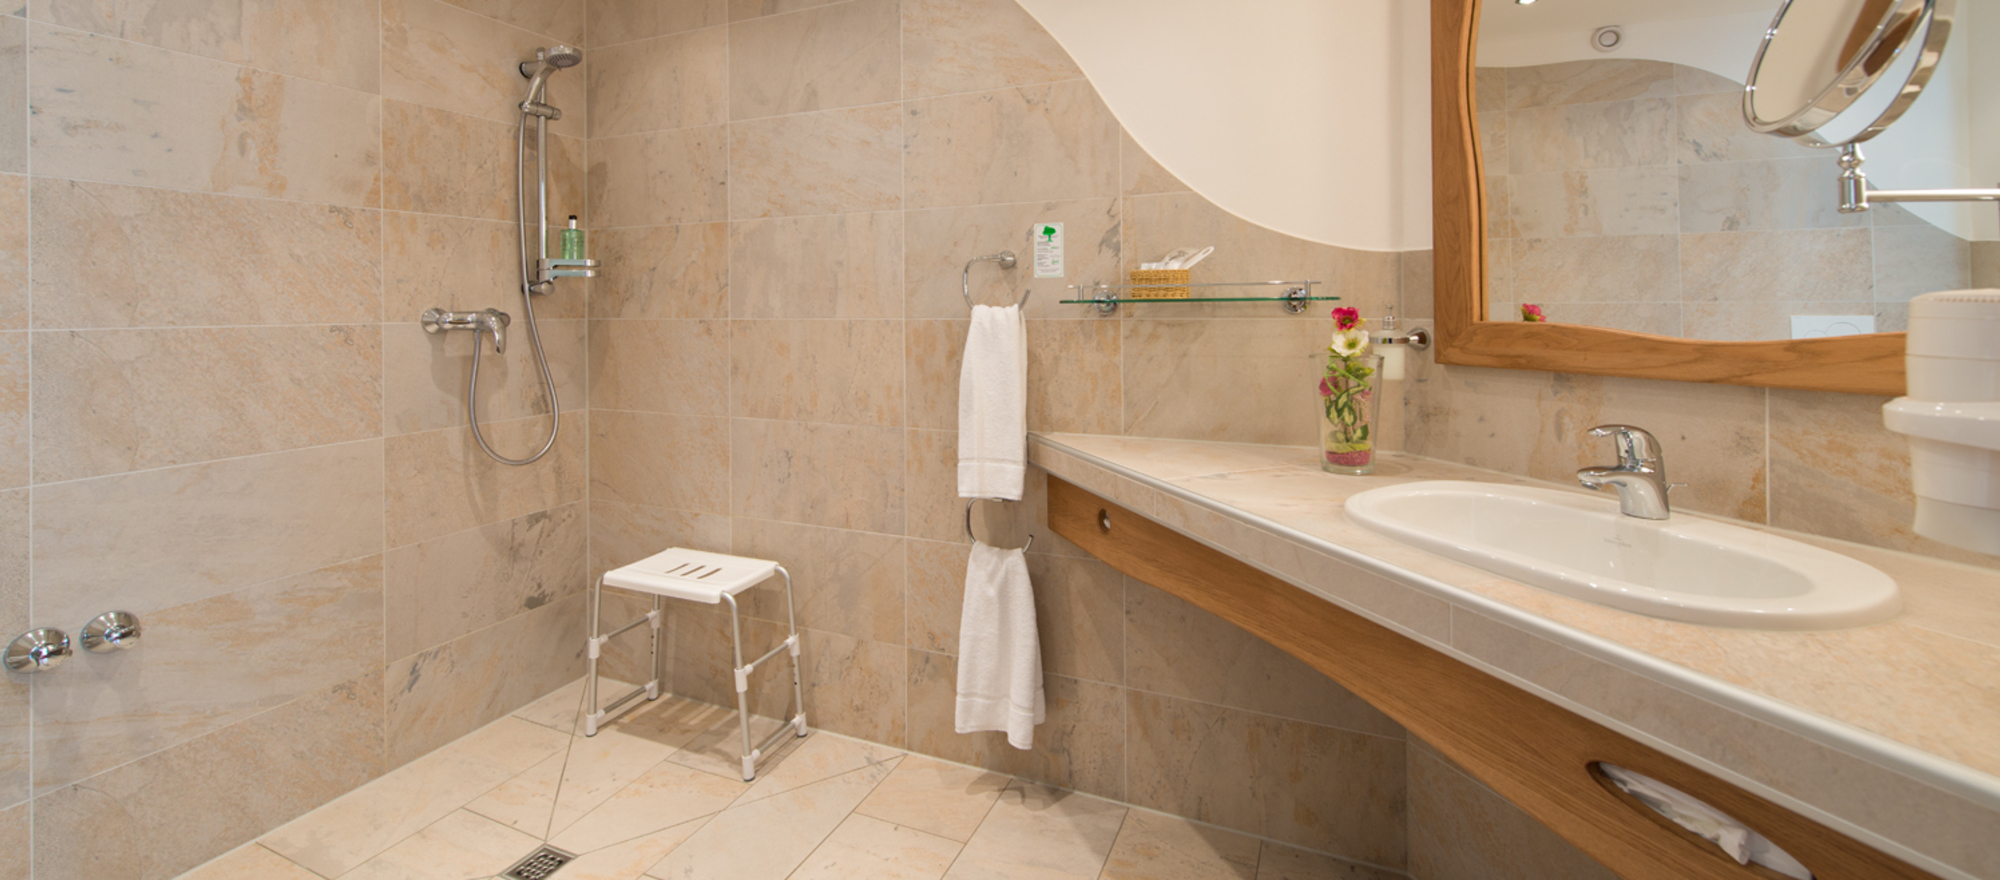 Spacious bath room at the 4-star Ringhotel Schwarzwald-Hotel Silberkoenig in Gutach-Bleibach